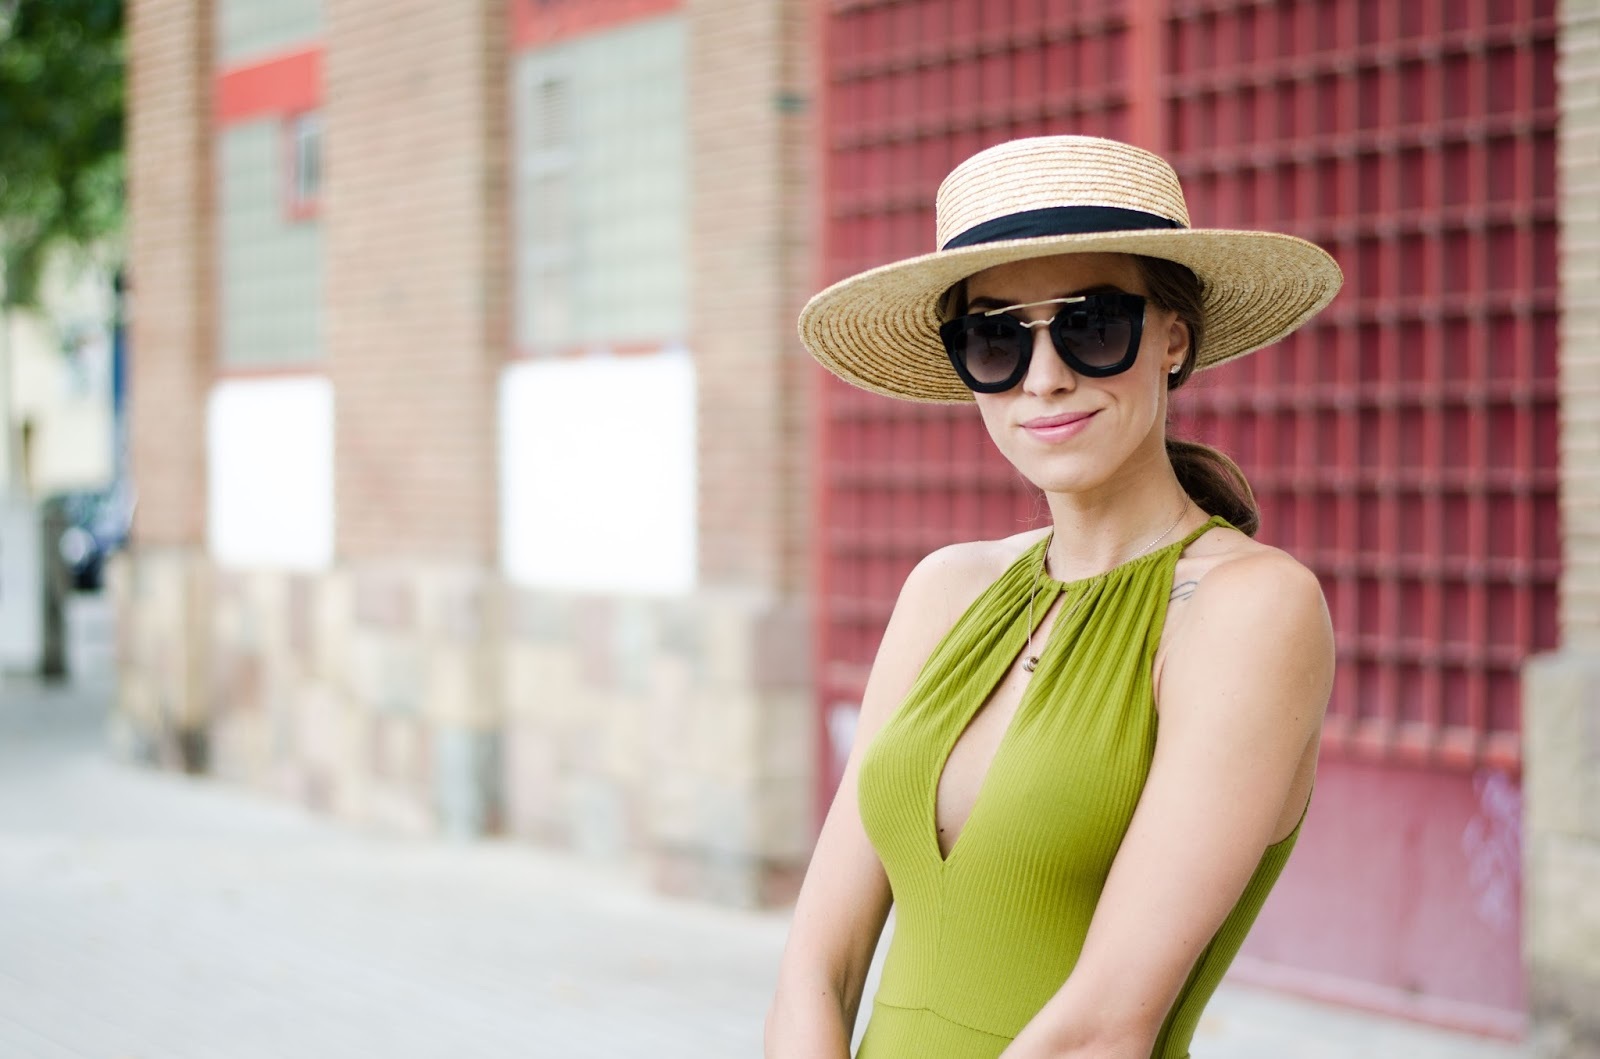 french connection straw hat prada sunglasses hm green bodysuit